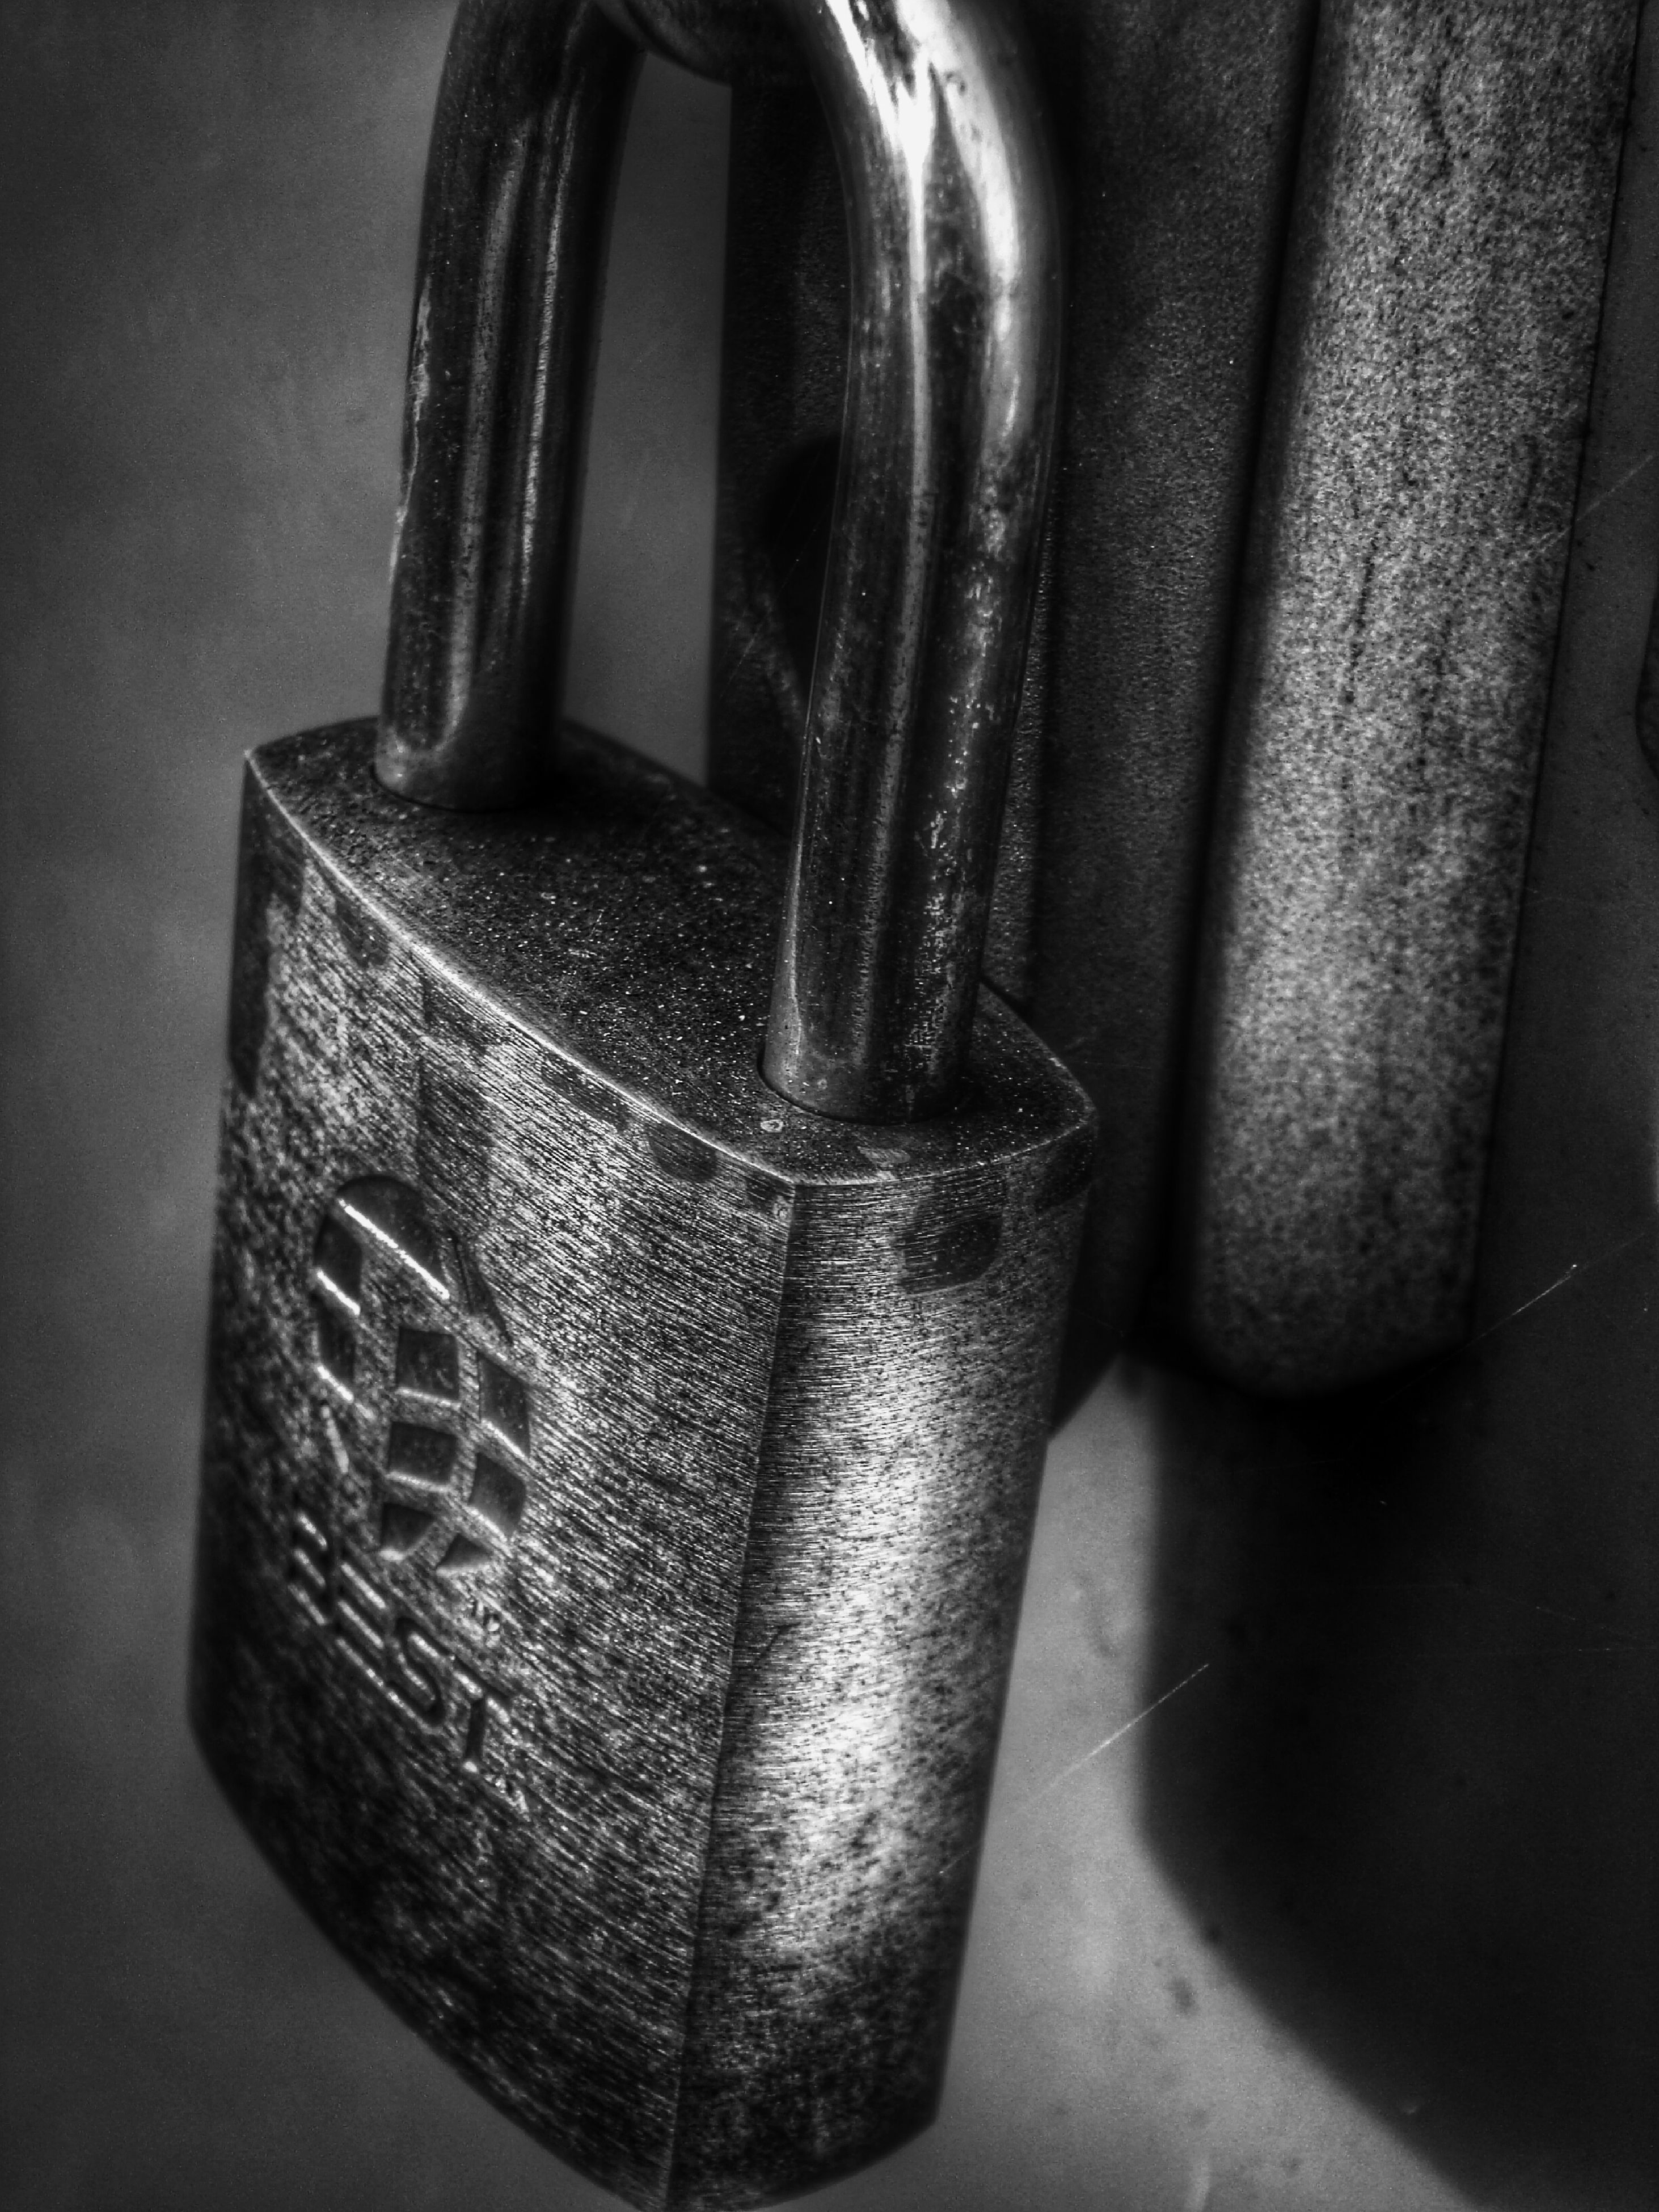 indoors, close-up, still life, metal, old, single object, old-fashioned, no people, metallic, table, antique, container, man made object, focus on foreground, jar, retro styled, studio shot, history, the past, wall - building feature